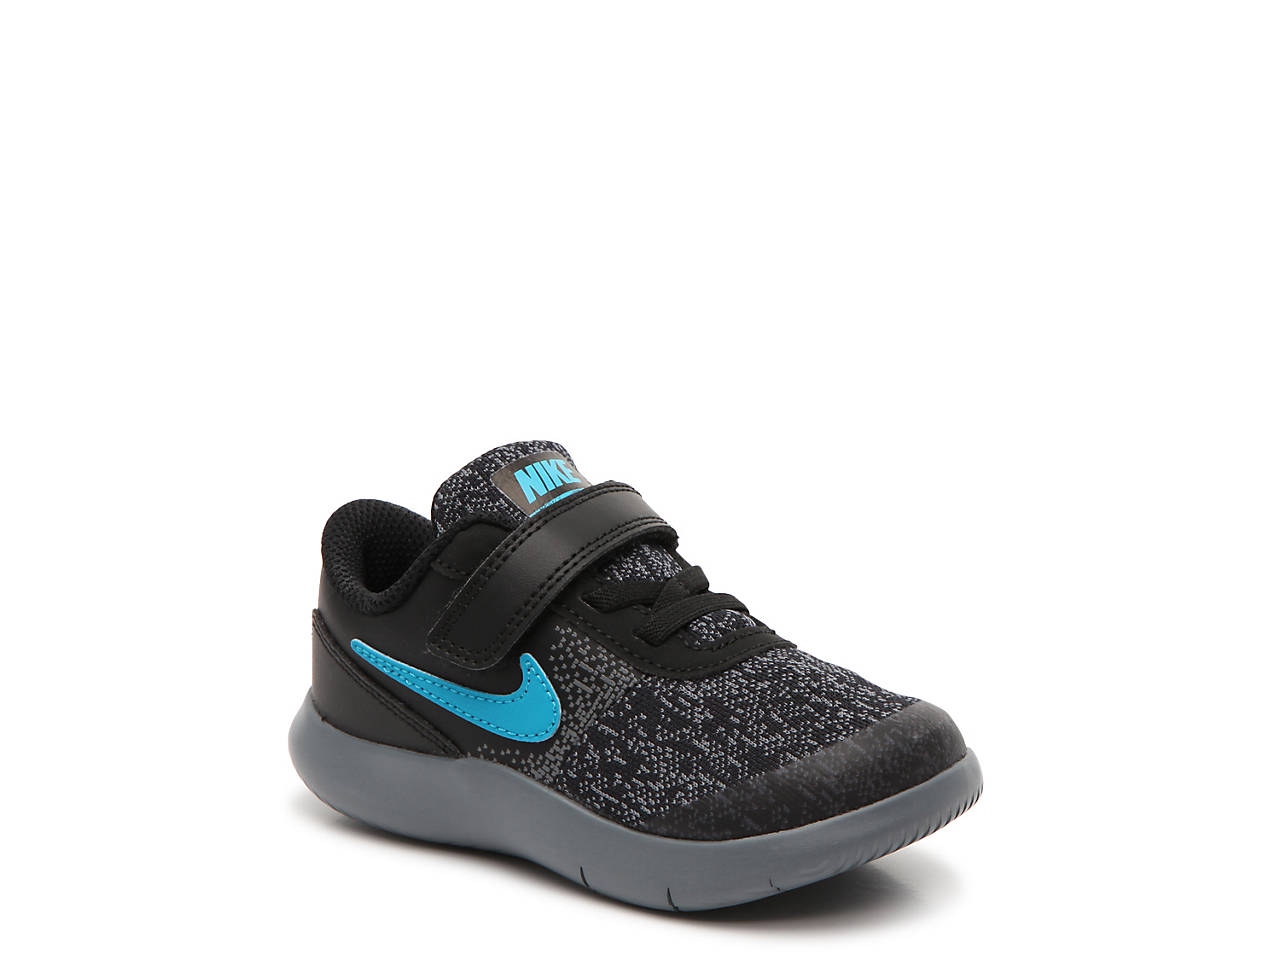 eaef4a66e Nike Flex Contact Infant   Toddler Running Shoe Kids Shoes